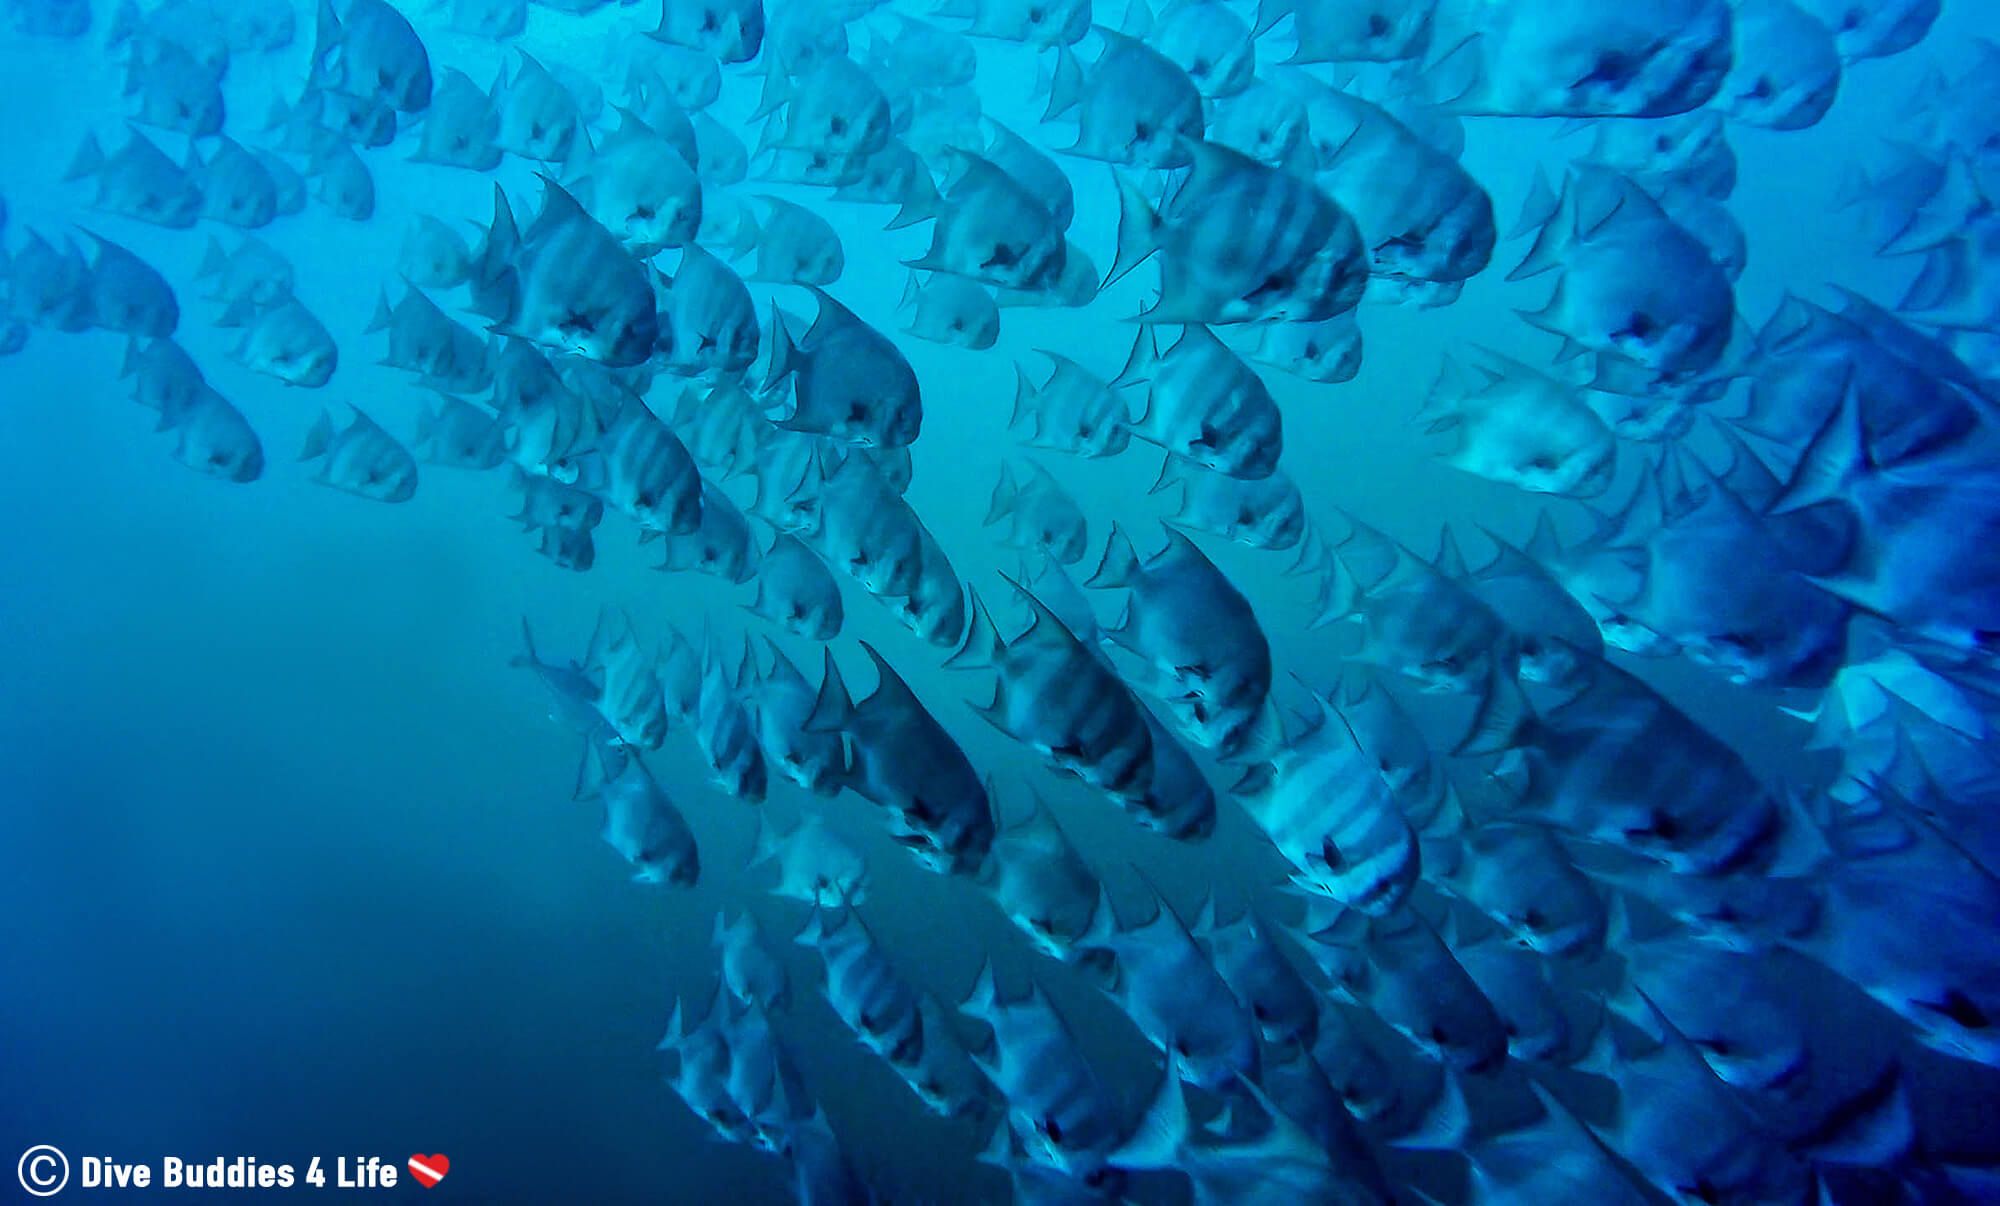 A Large Swimming School Of Spadefish In The Pacific Ocean Of Bat Island, Costa Rica